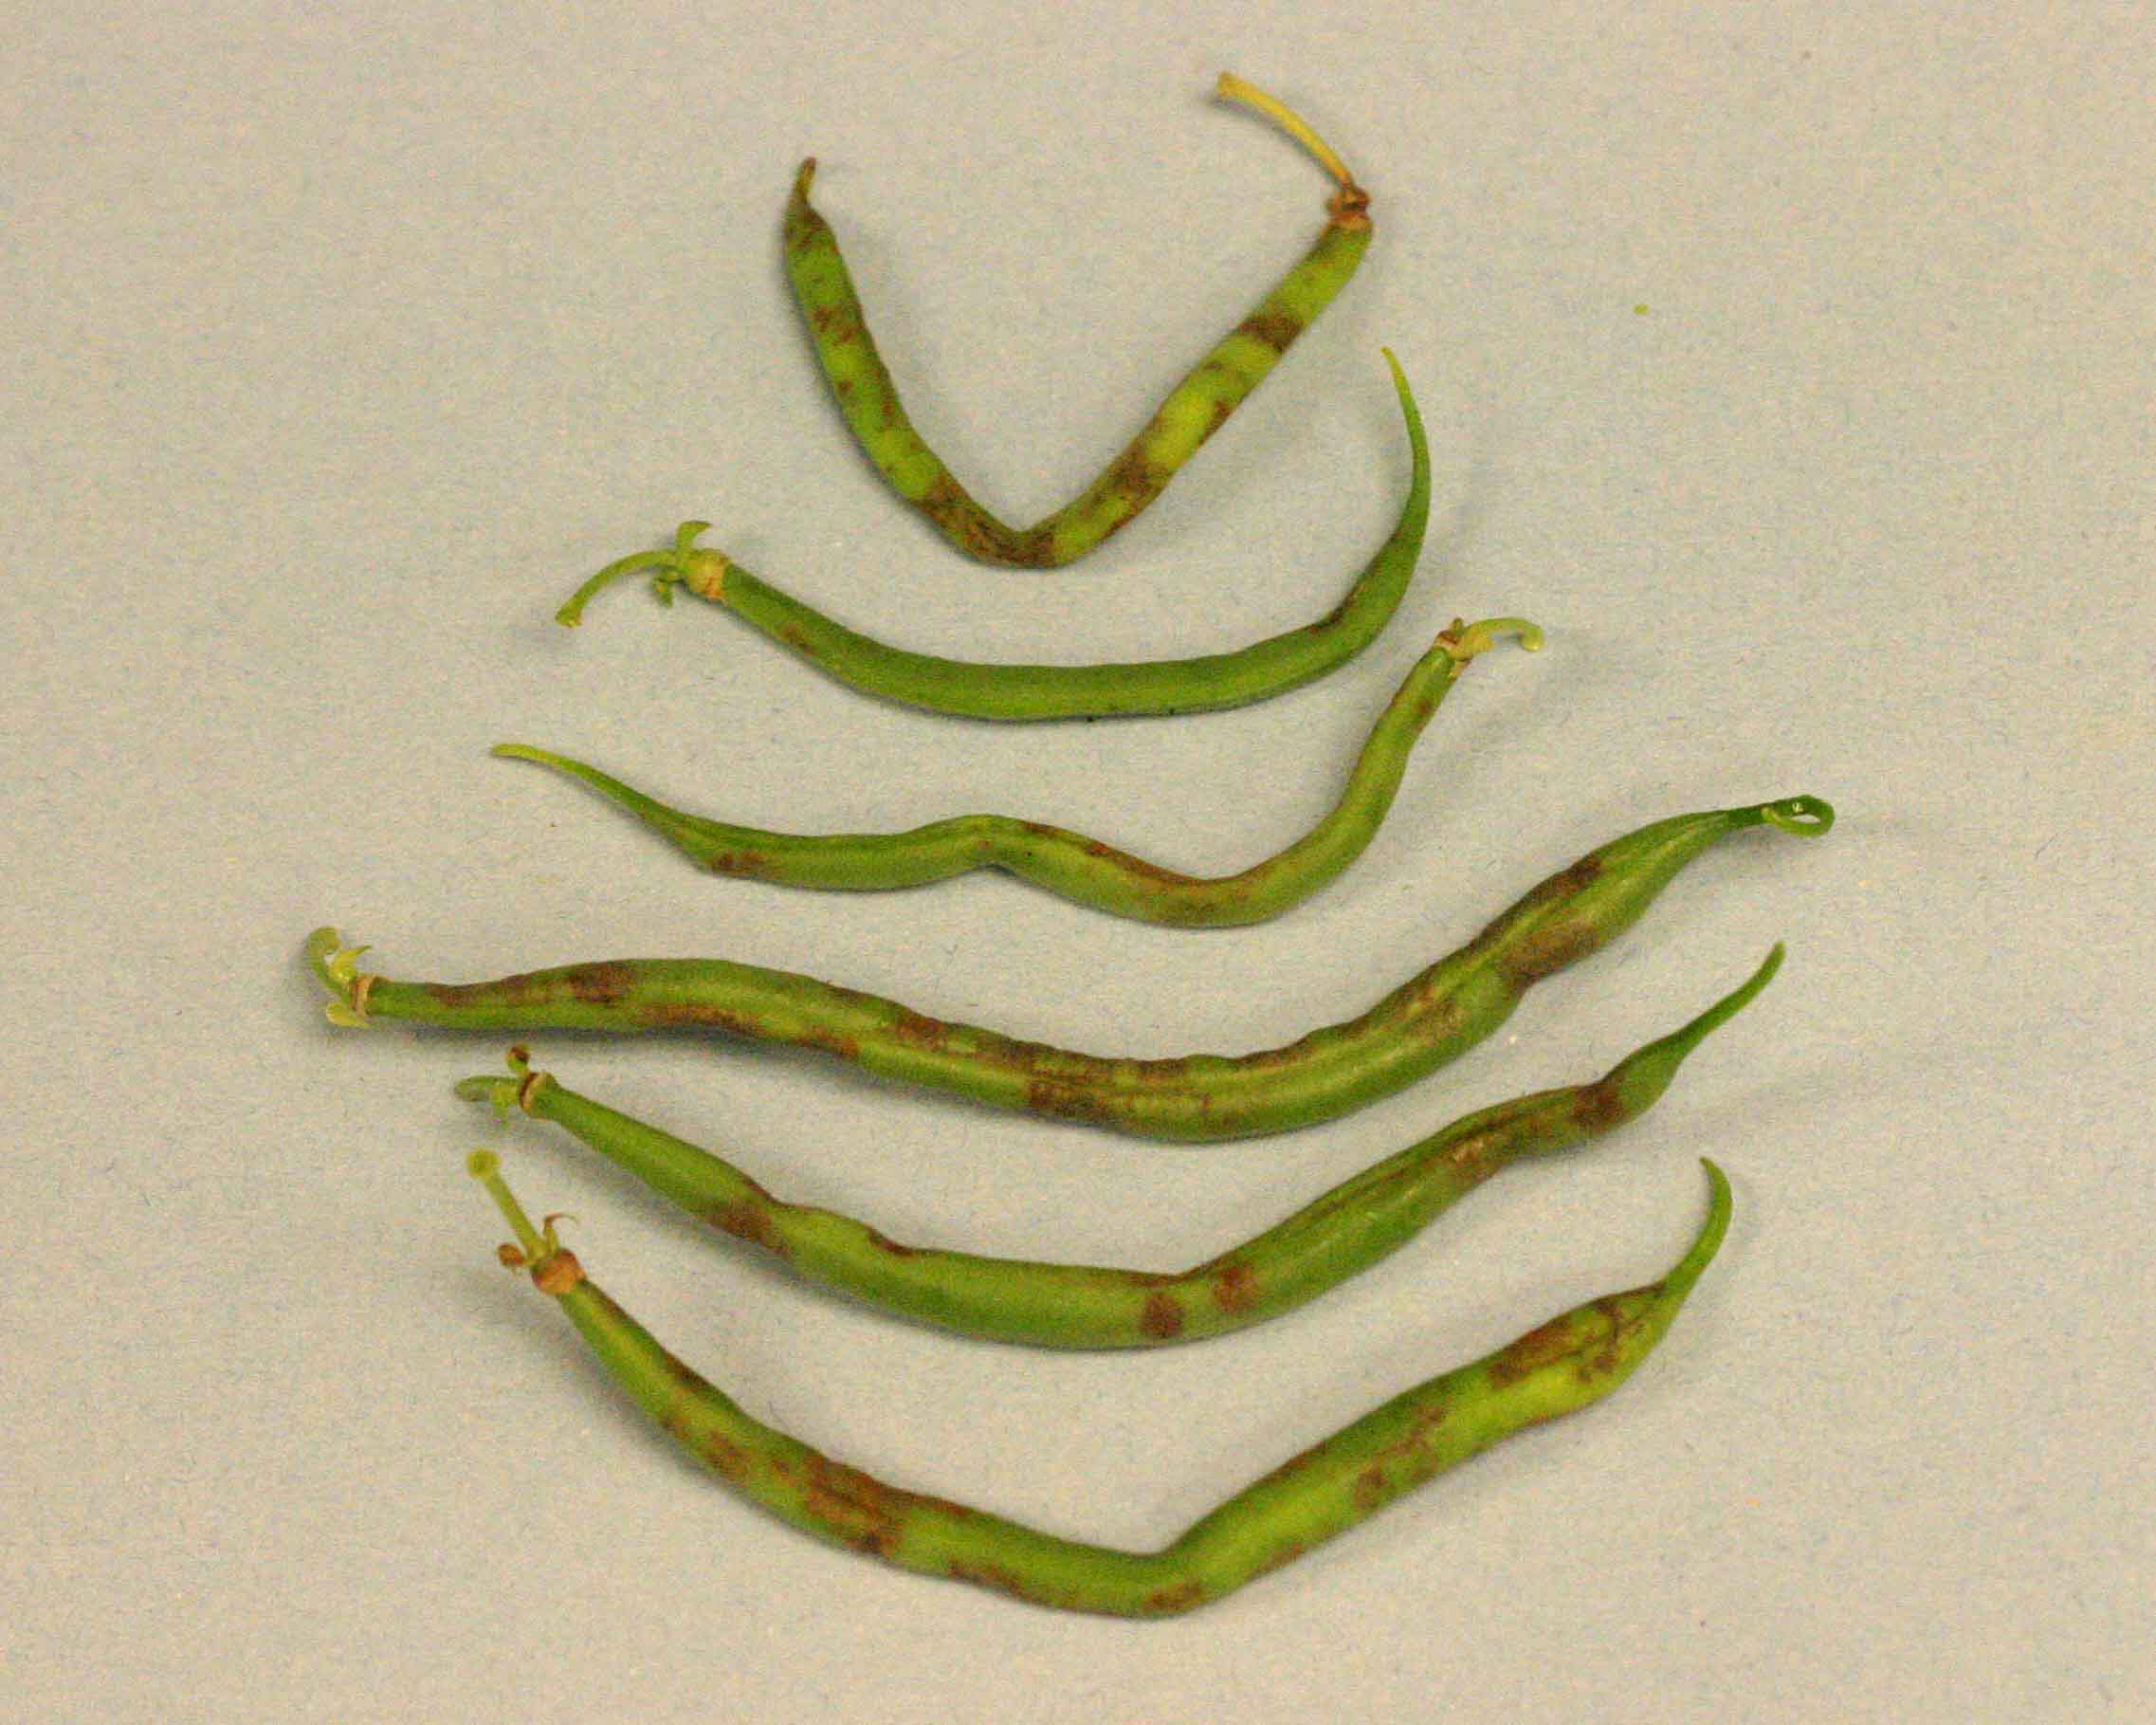 Figure 4. Necrotic spots on green bean pods from plant infected with Tobacco streak virus.